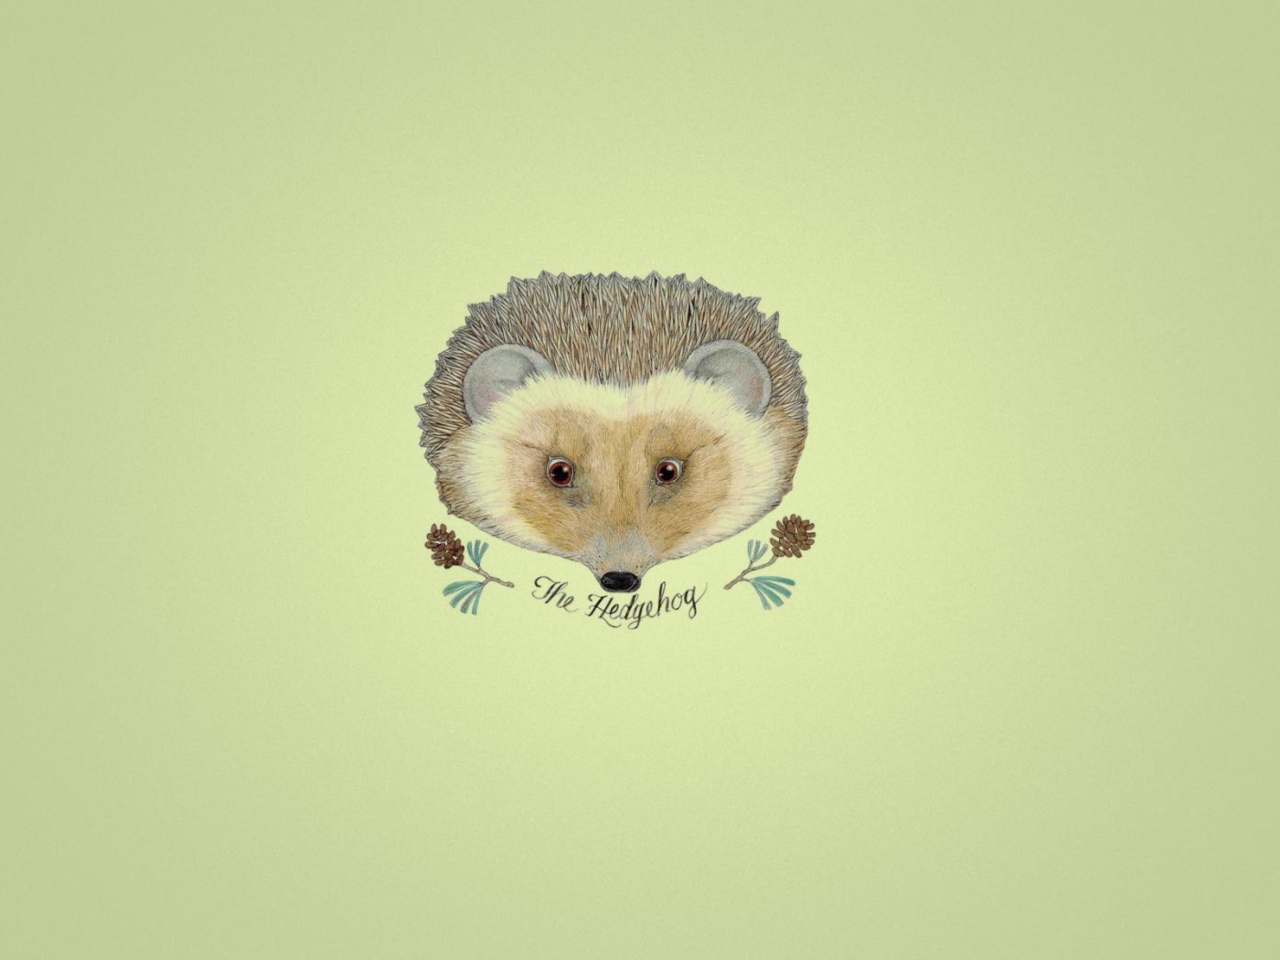 Hedgehog wallpaper 1280x960